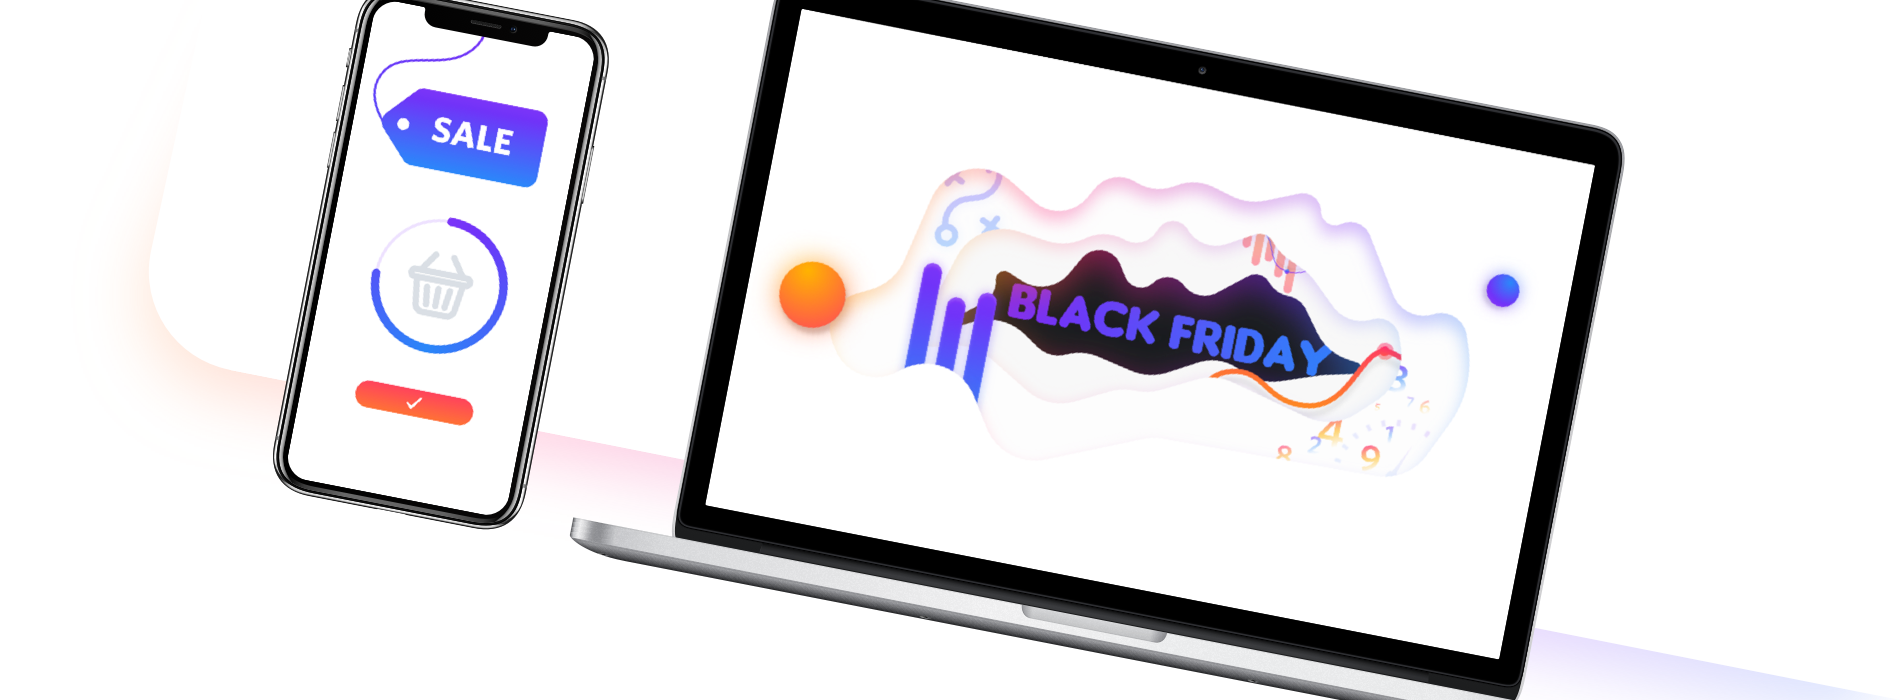 Shoppers Moving Online for Black Friday: Stats